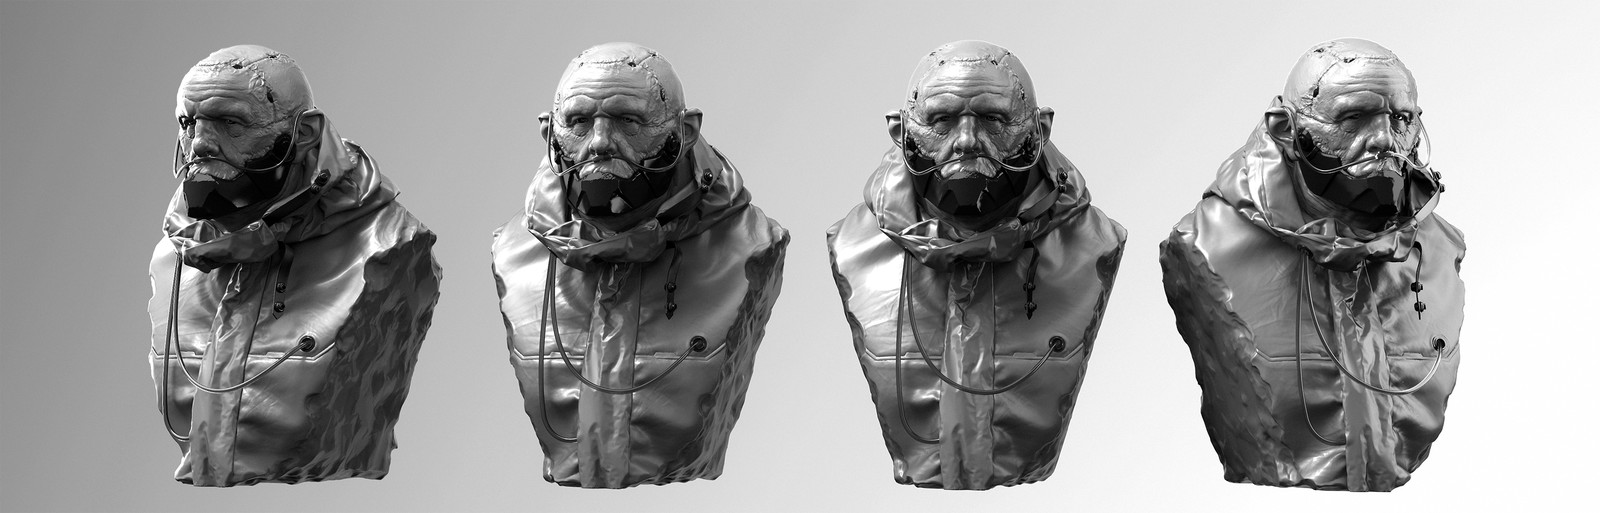 Guy for SketchFab new SSS